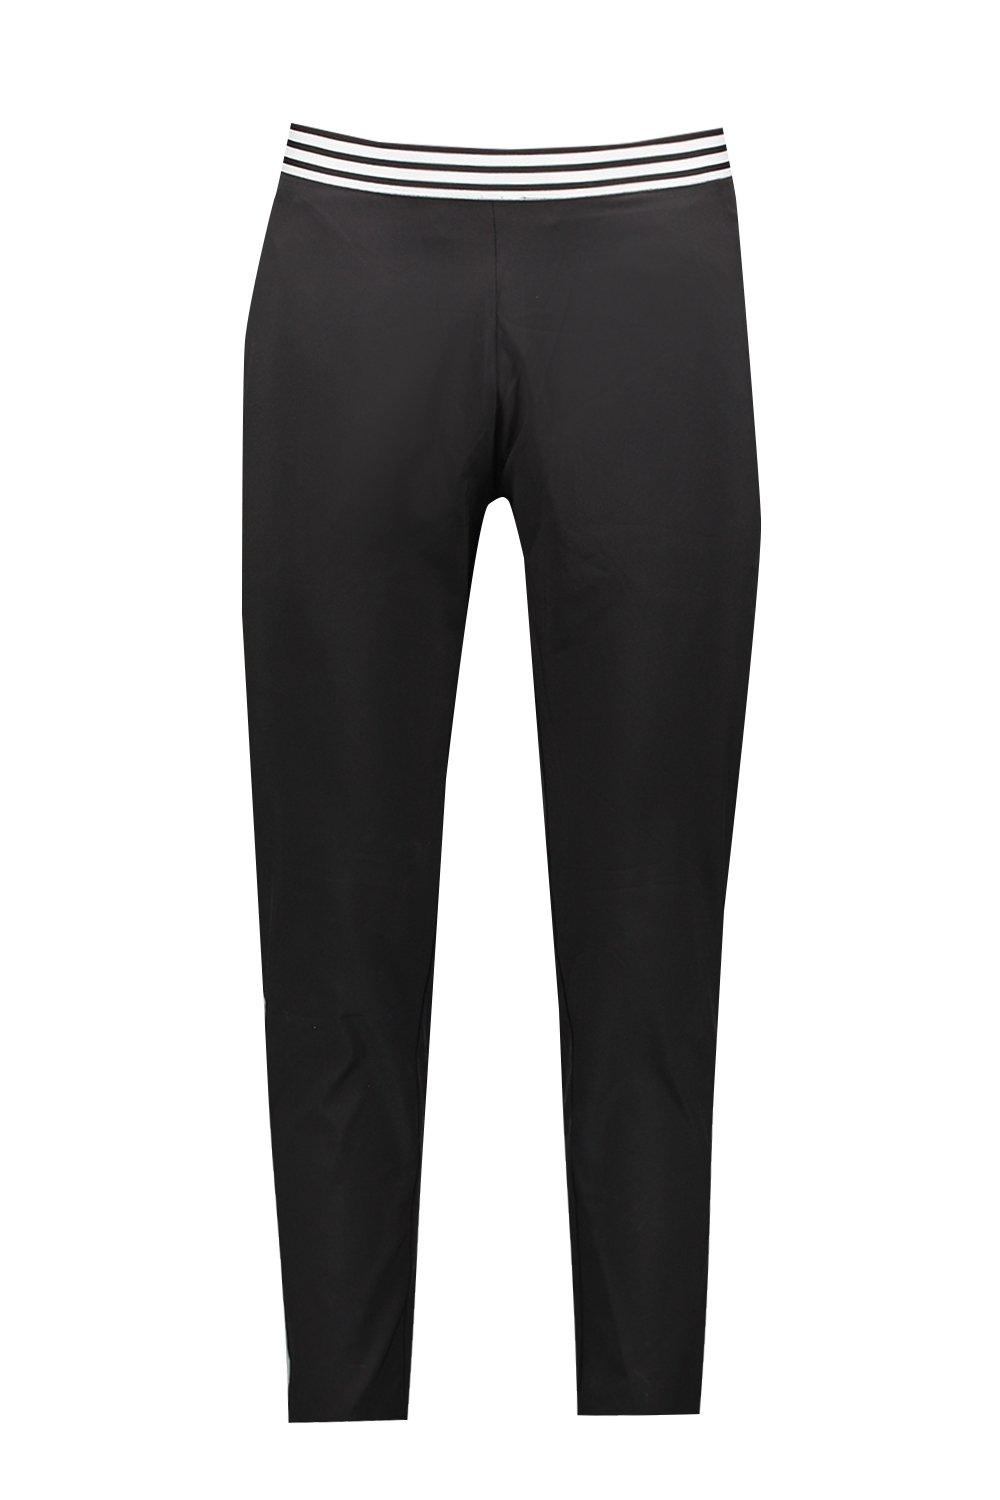 With Jogger Gym Tape MAN Side Active black qgt7wzSx